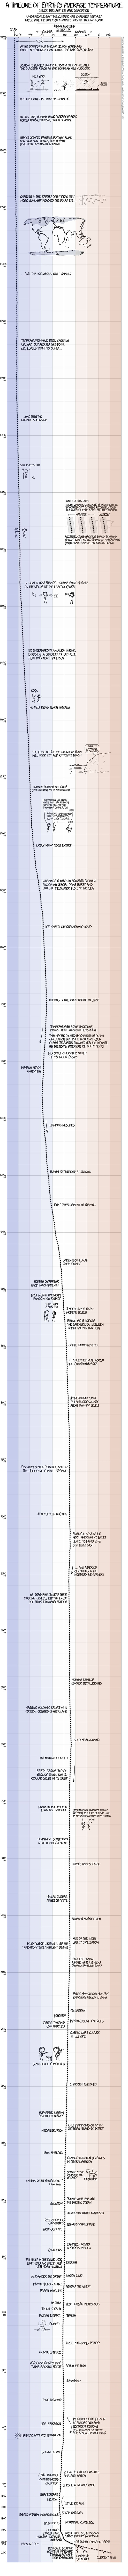 A timeline of Earth's average temperature... tic tac... tic tac...